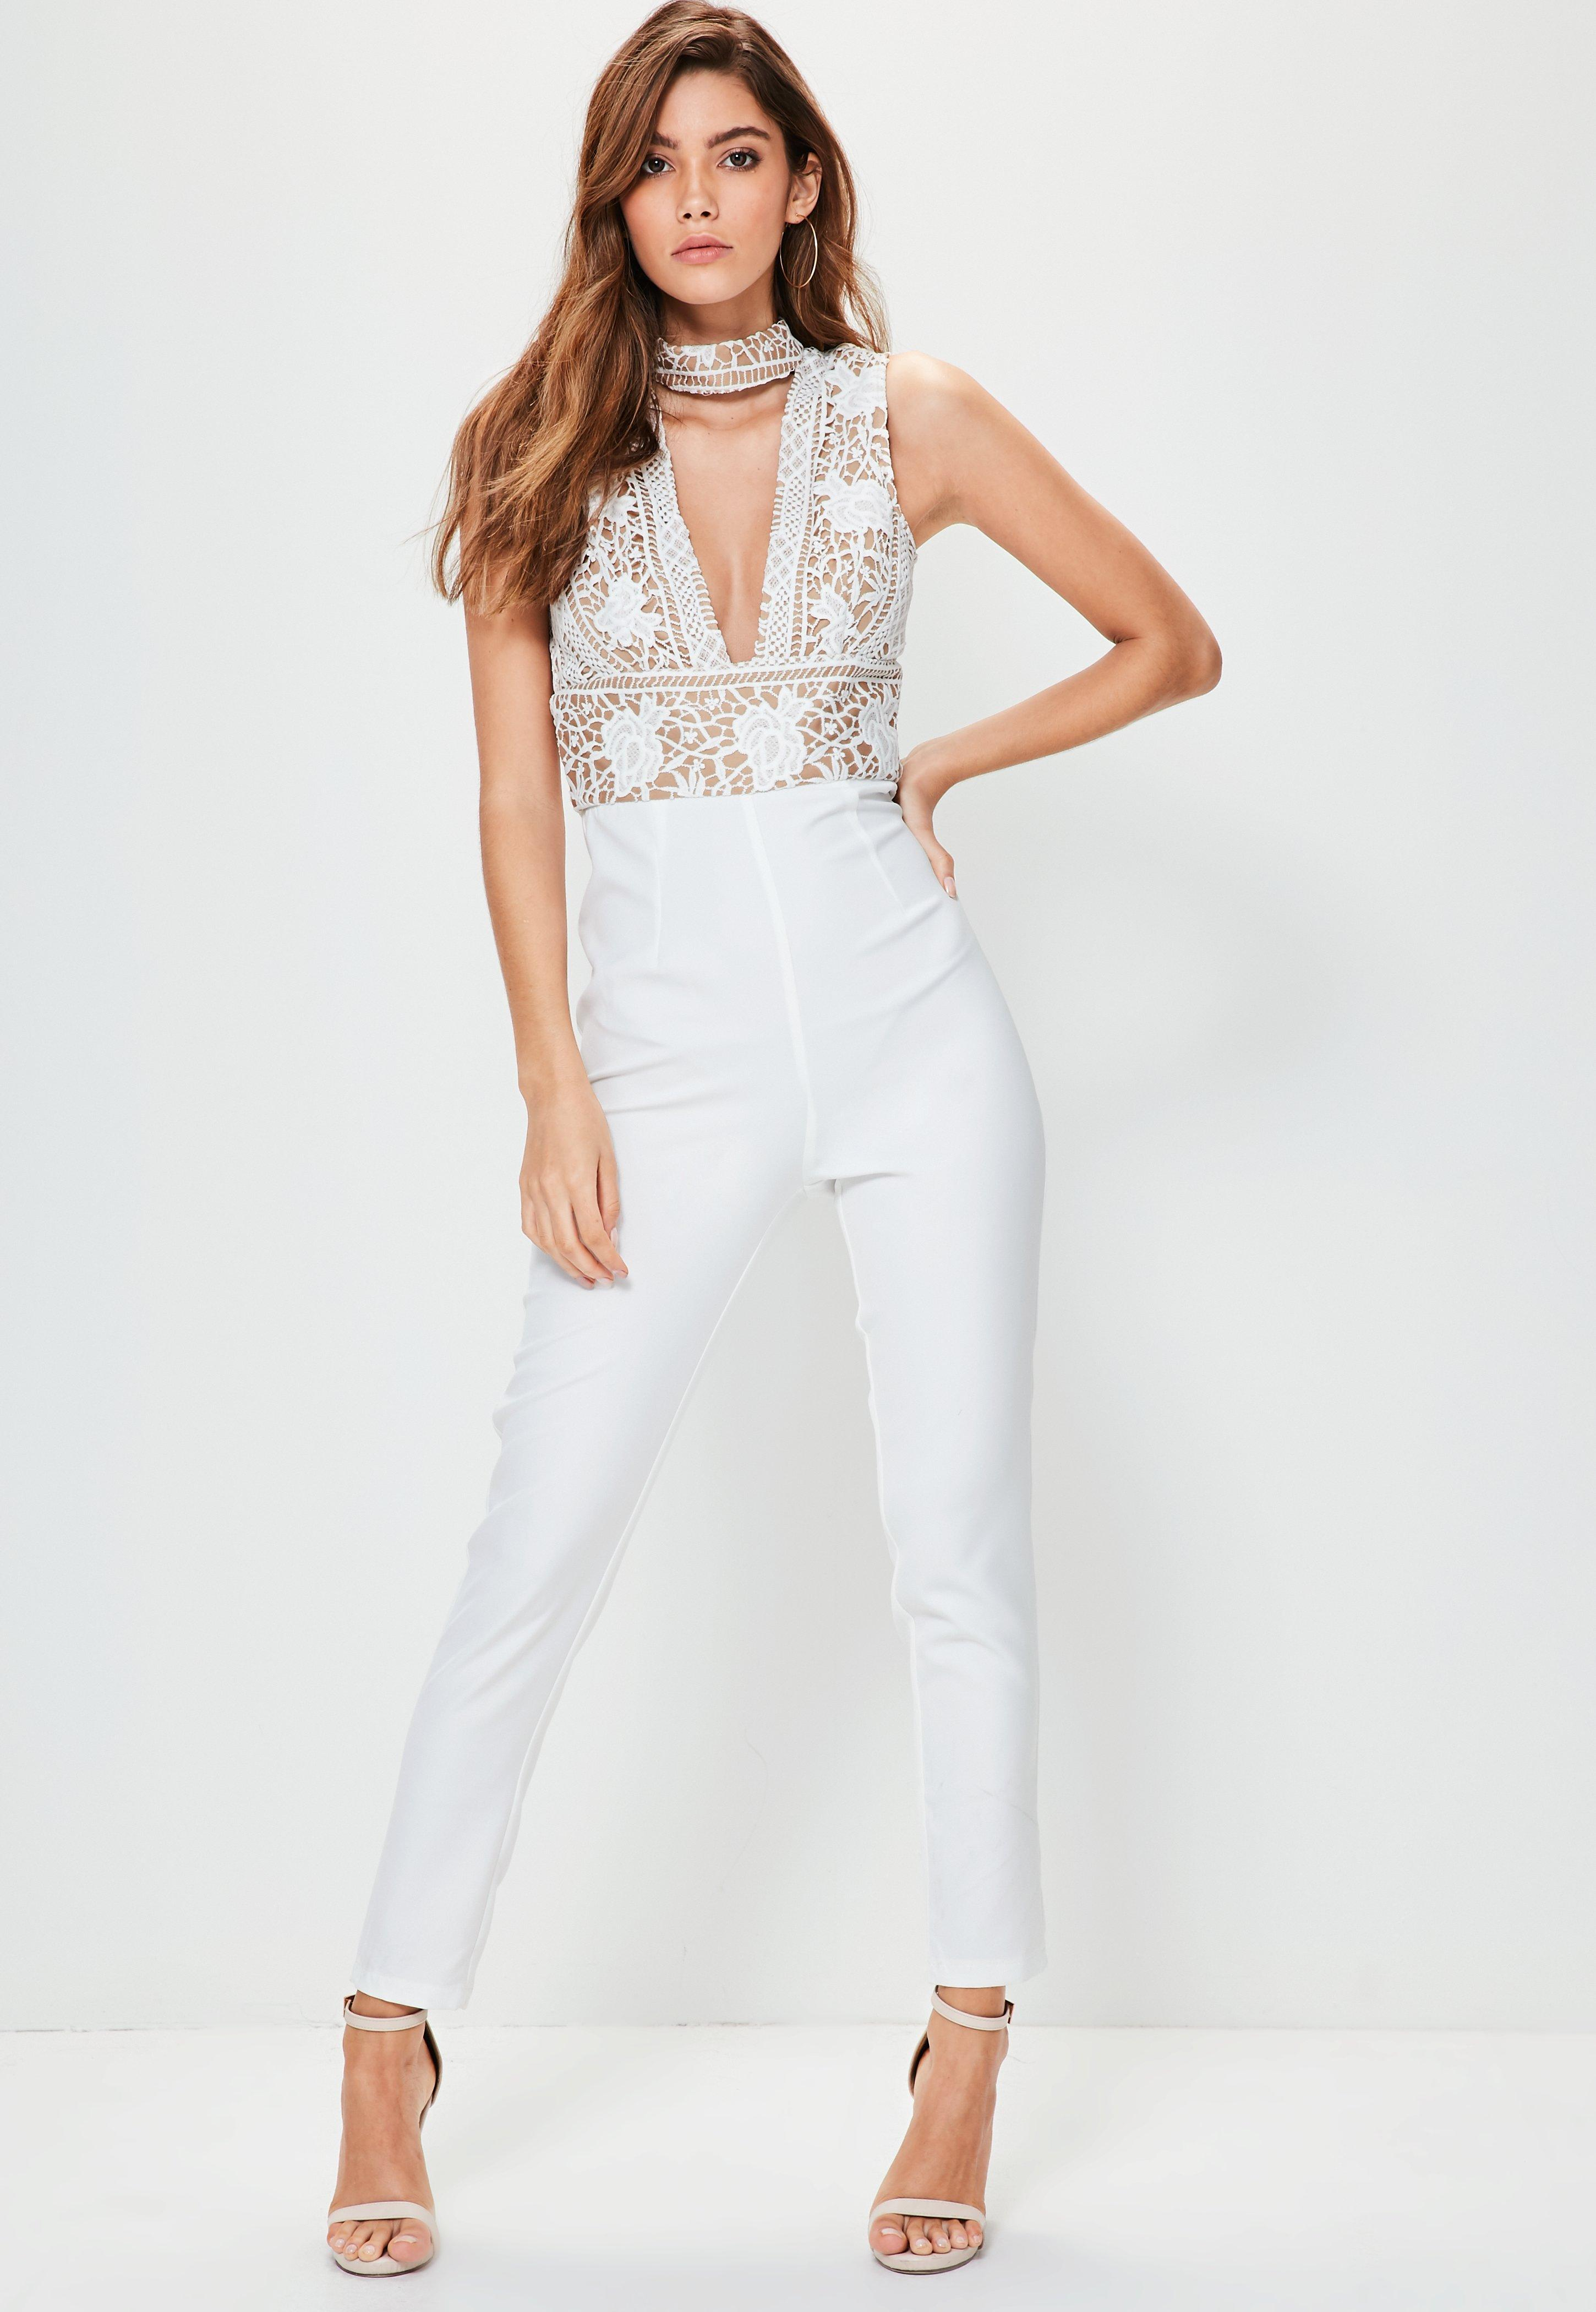 5316affd0b16 Missguided White Lace Top Choker Sleeveless Jumpsuit in White - Lyst